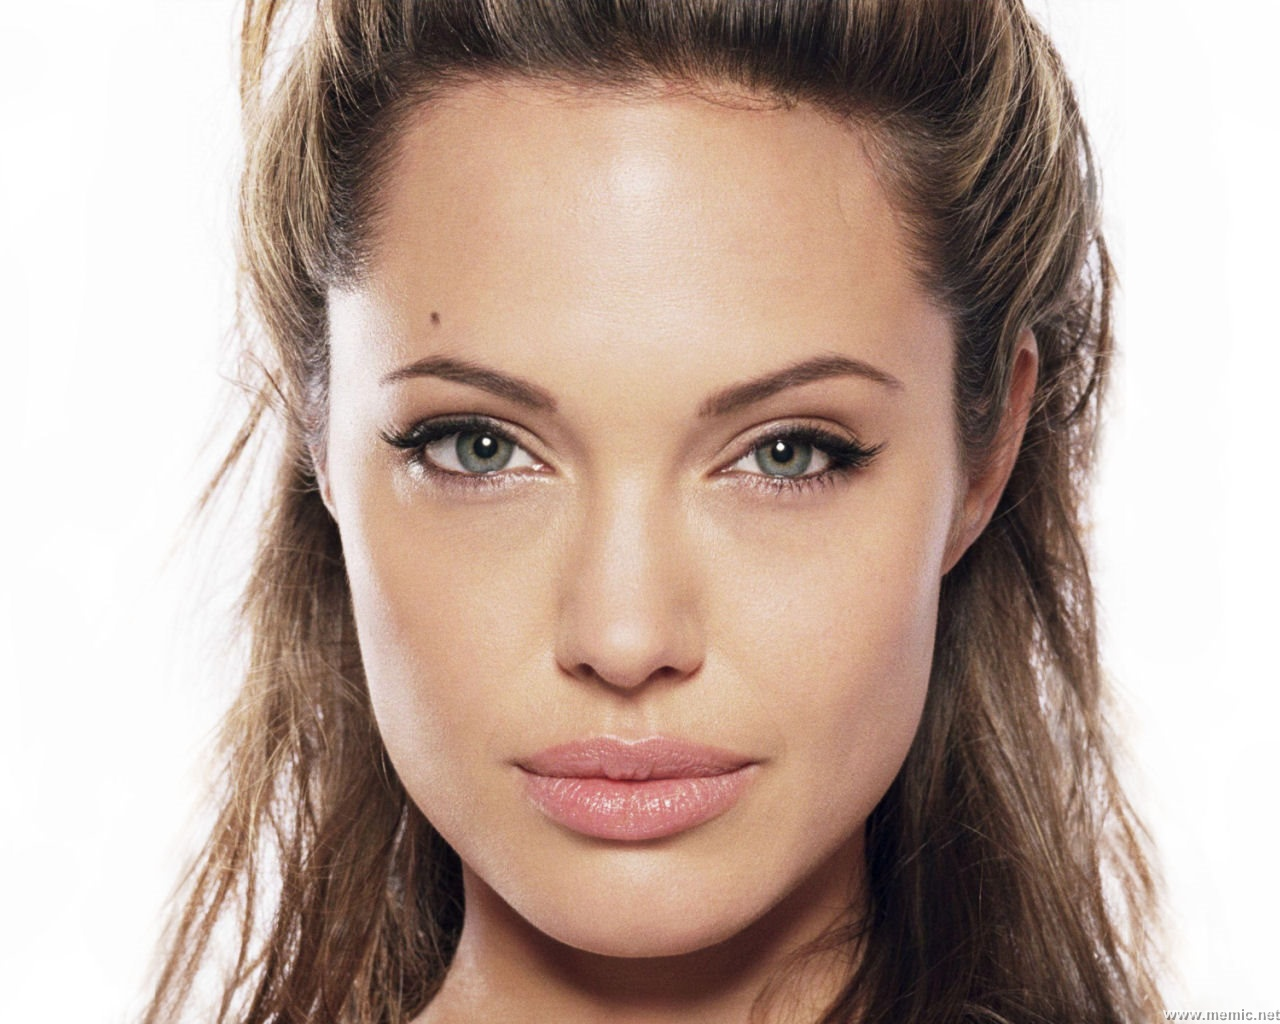 Matching Jewelry With Your Face Shape - Angelina Jolie